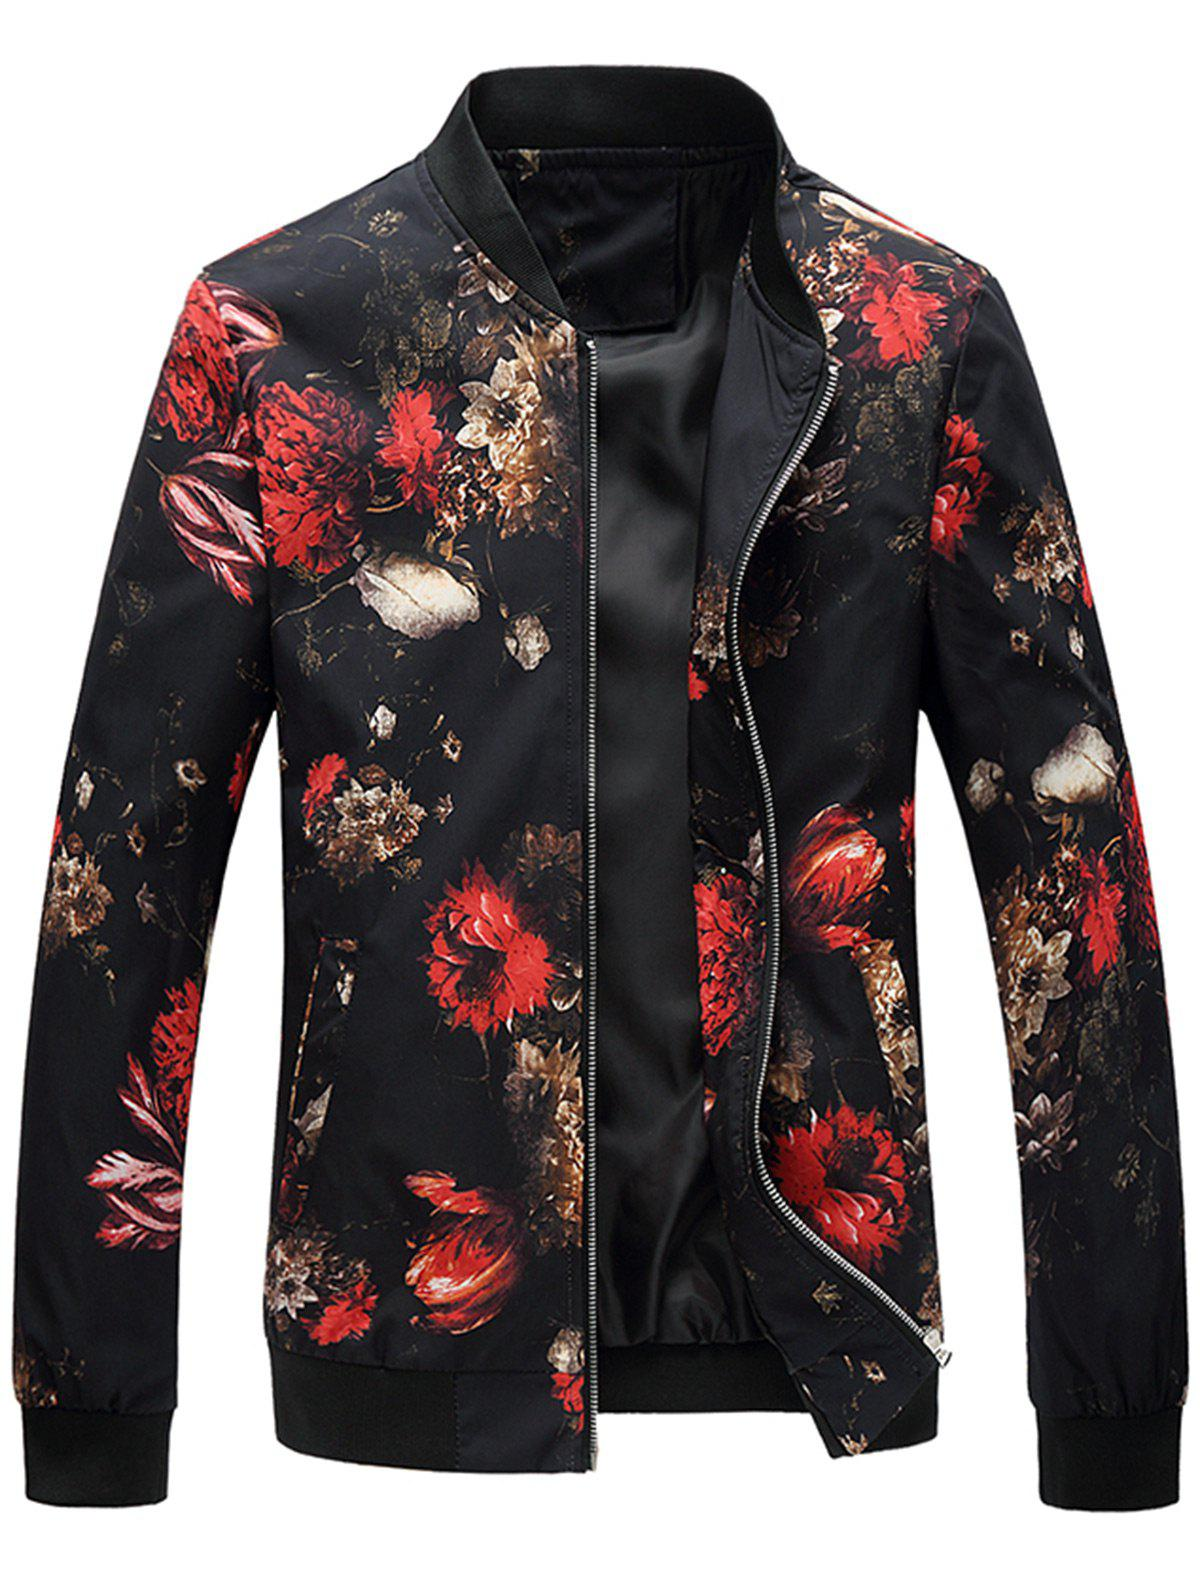 Floral Printed Zip Up Jacket leopard floral print zip up jacket